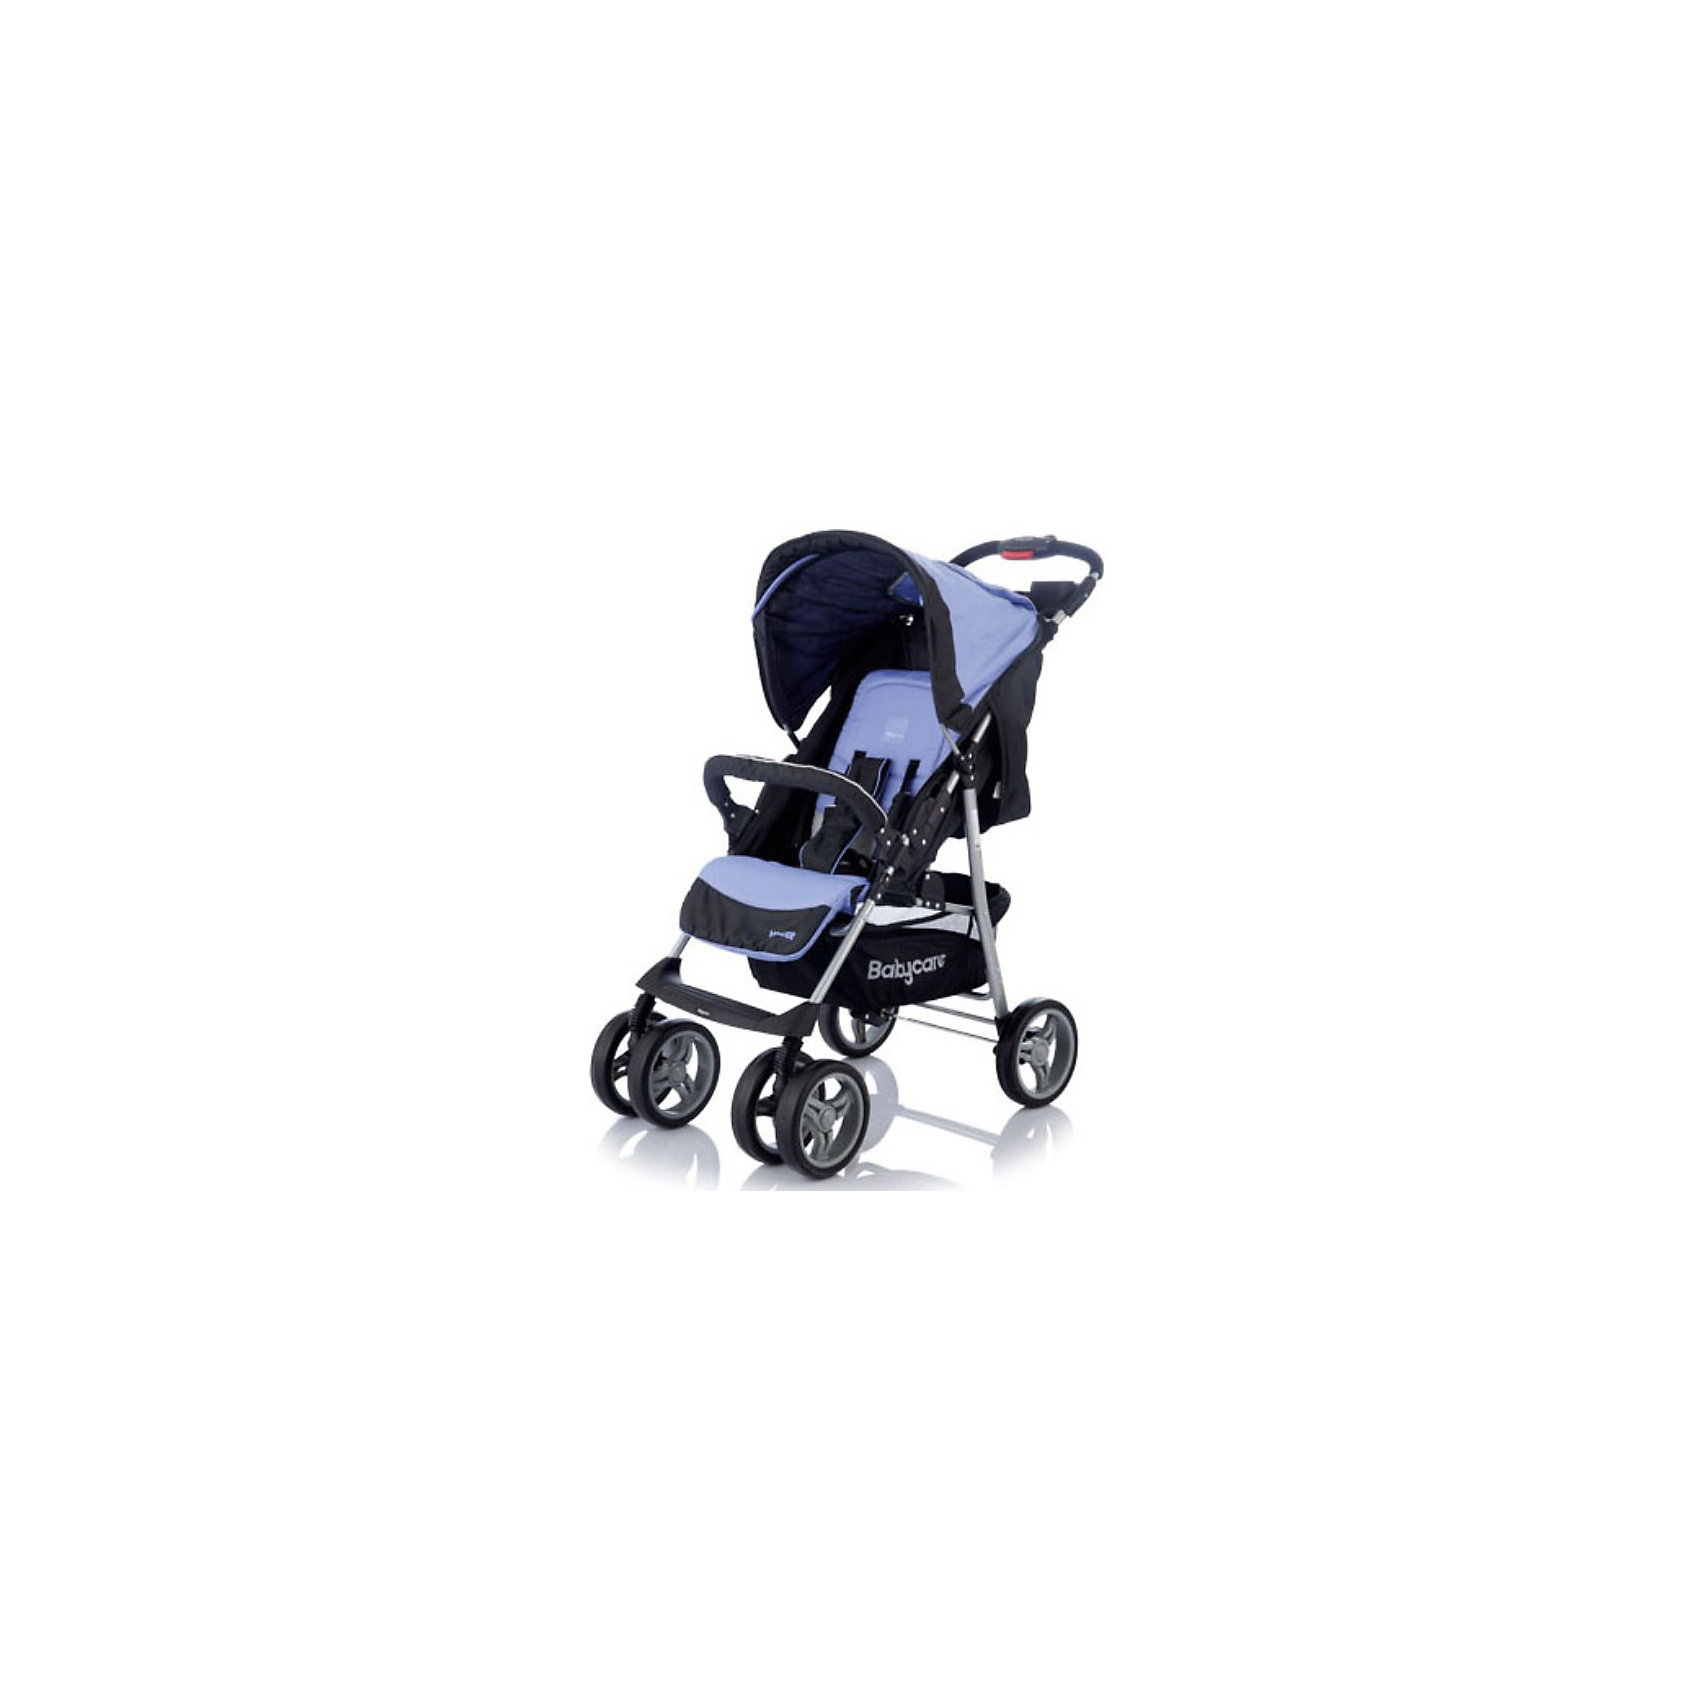 Baby Care Прогулочная коляска Voyager, Baby Care, фиолетовый прогулочная коляска cool baby kdd 6699gb t fuchsia light grey